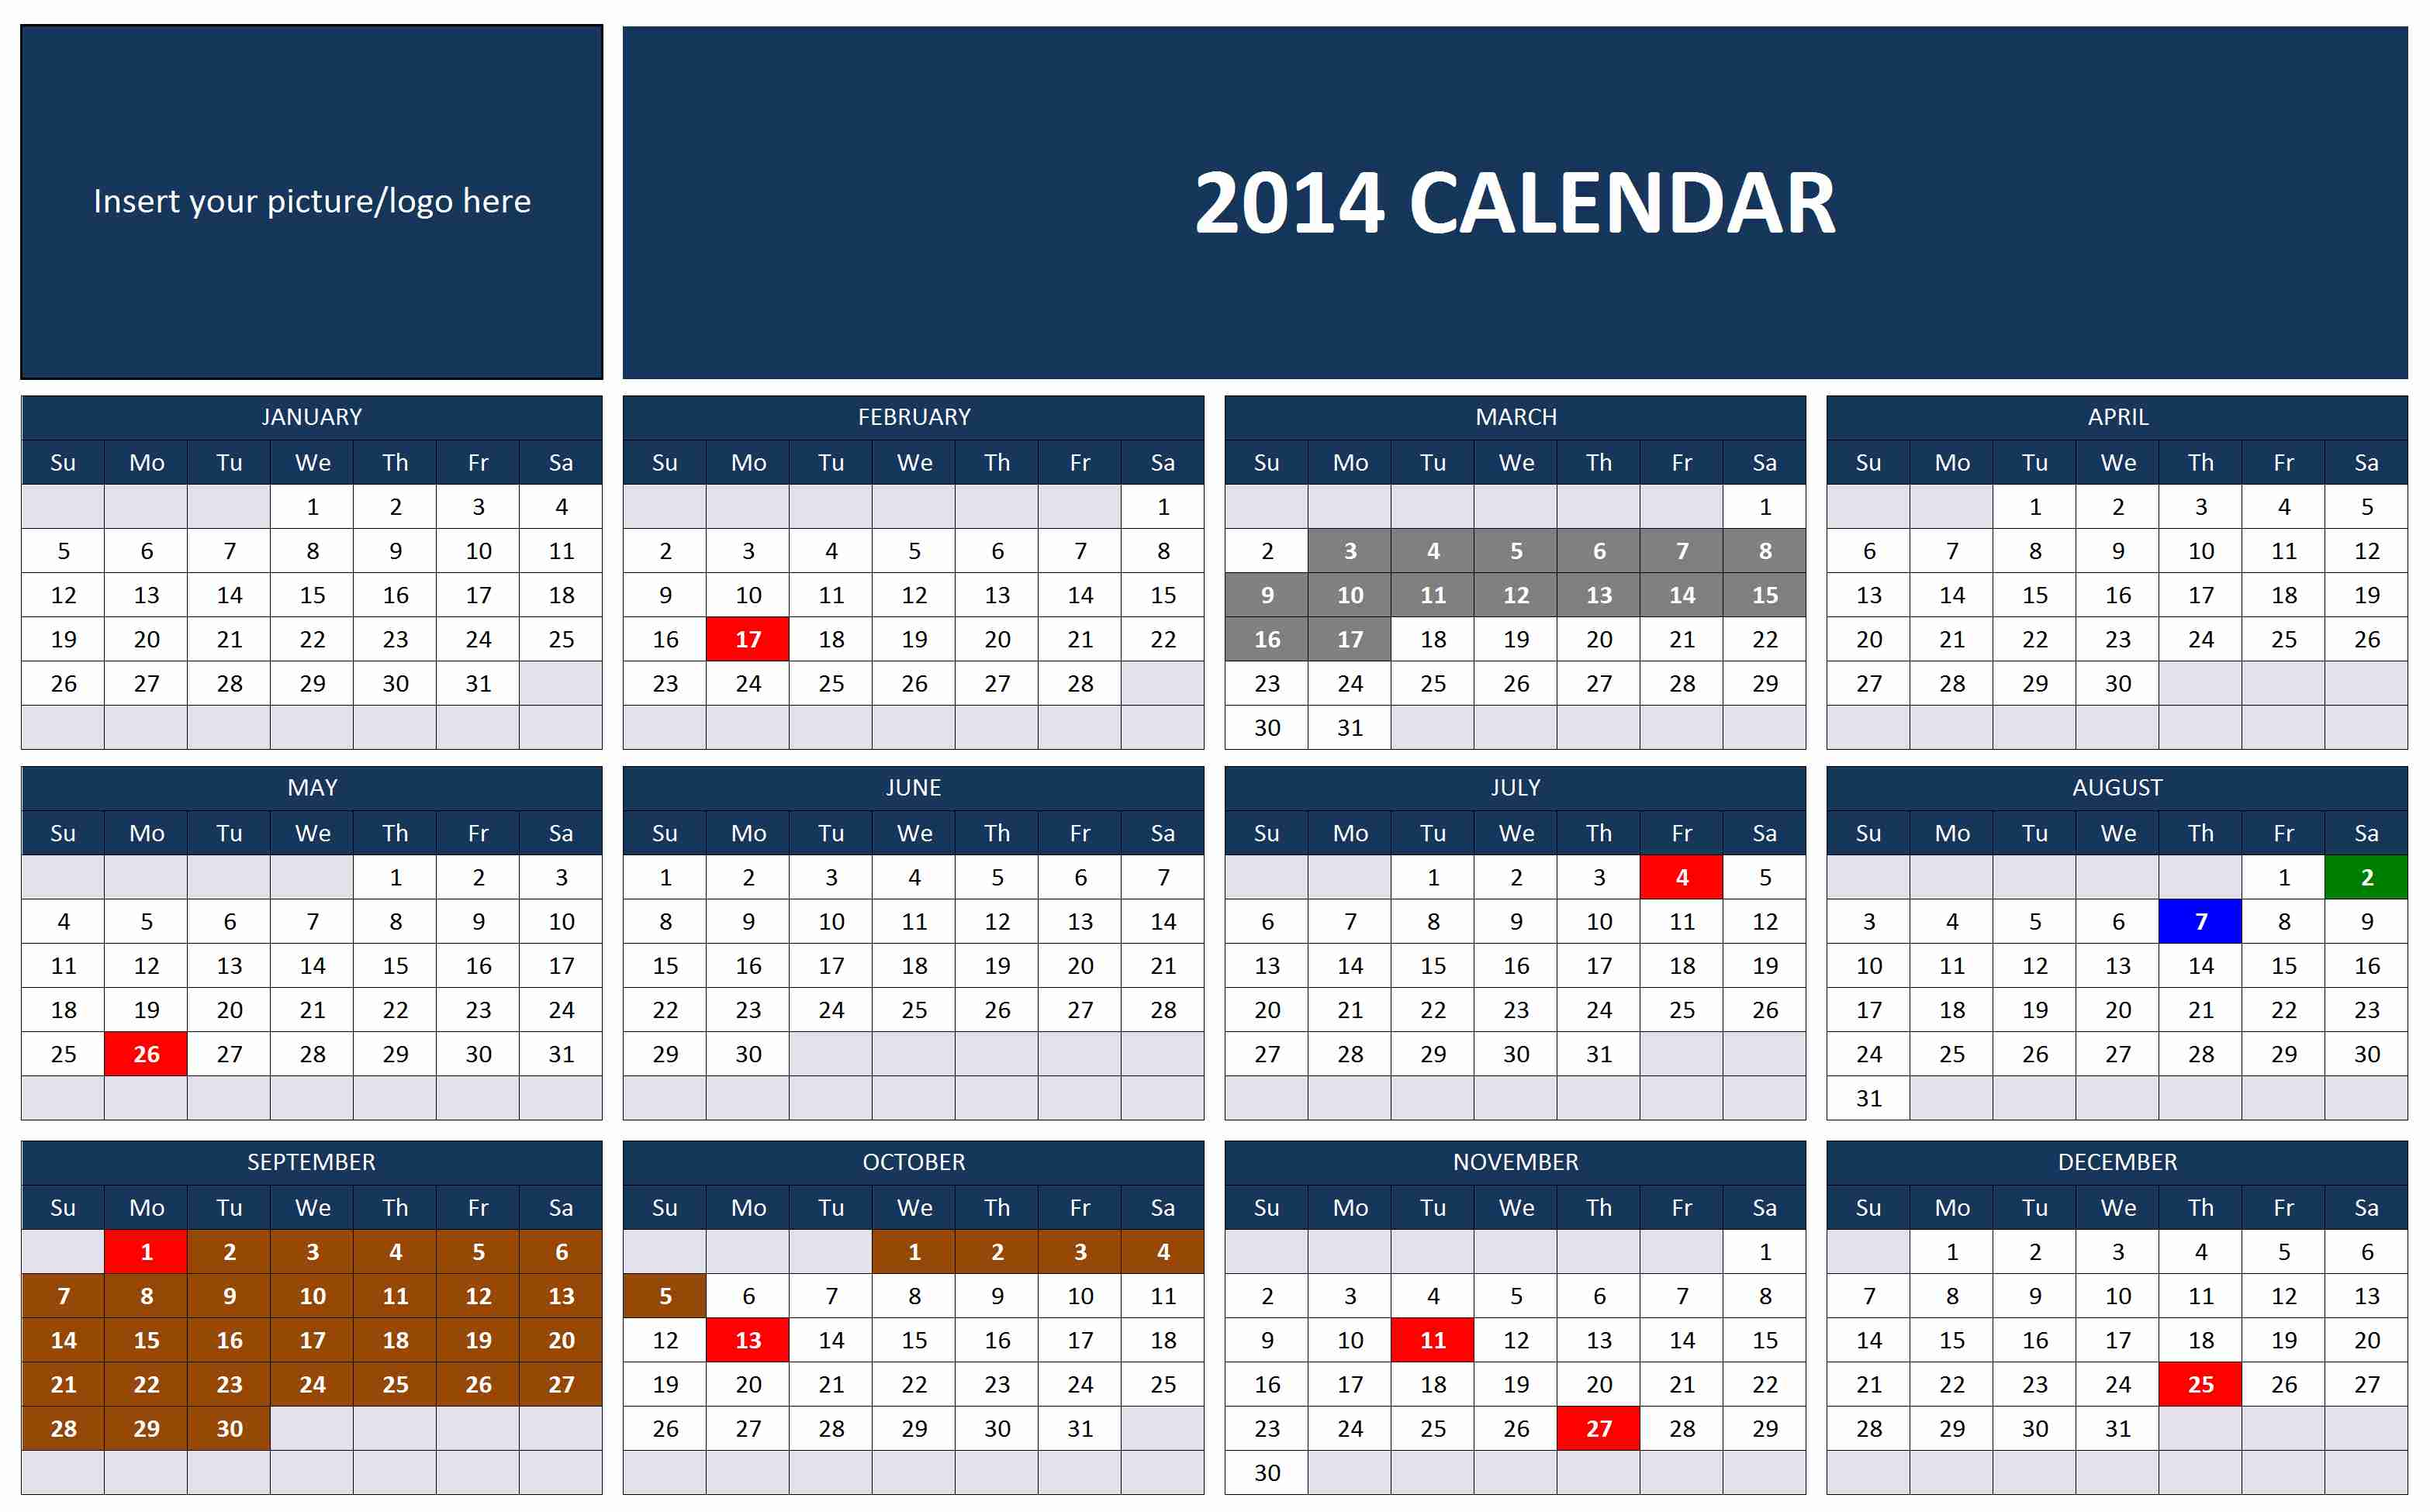 how to make a calendar in excel without template